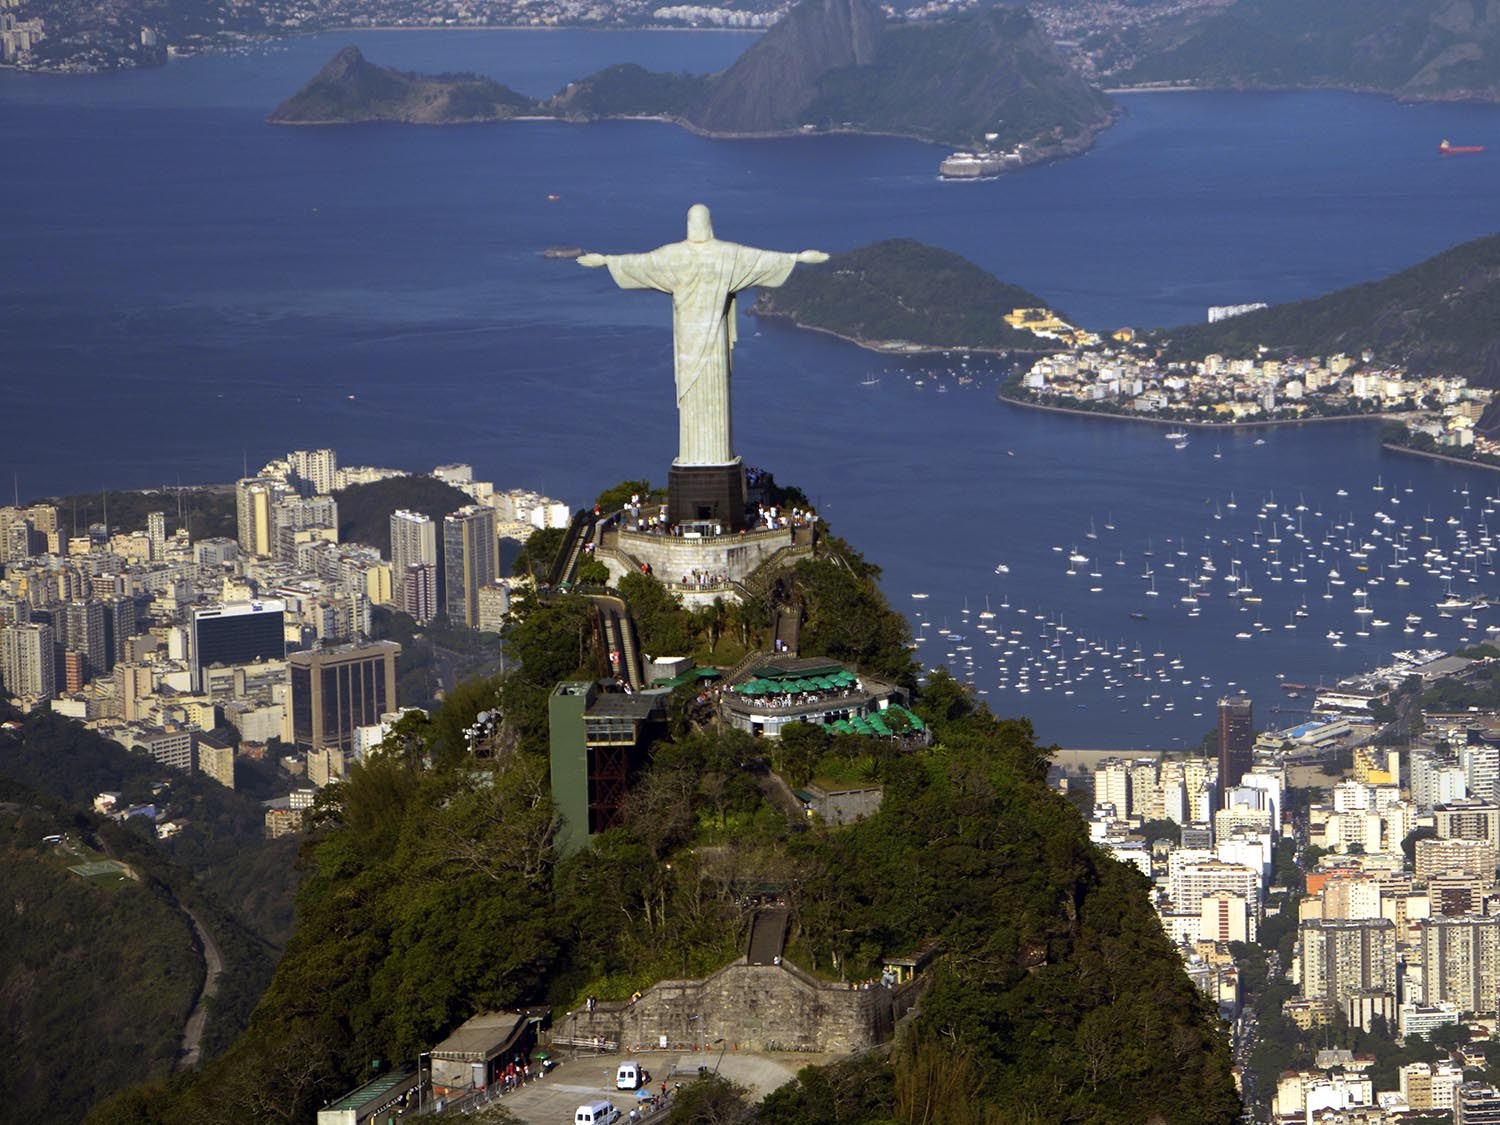 U.S. Olympic hopefuls look ahead to Rio de Janeiro and the 2016 Olympic Games one year out.